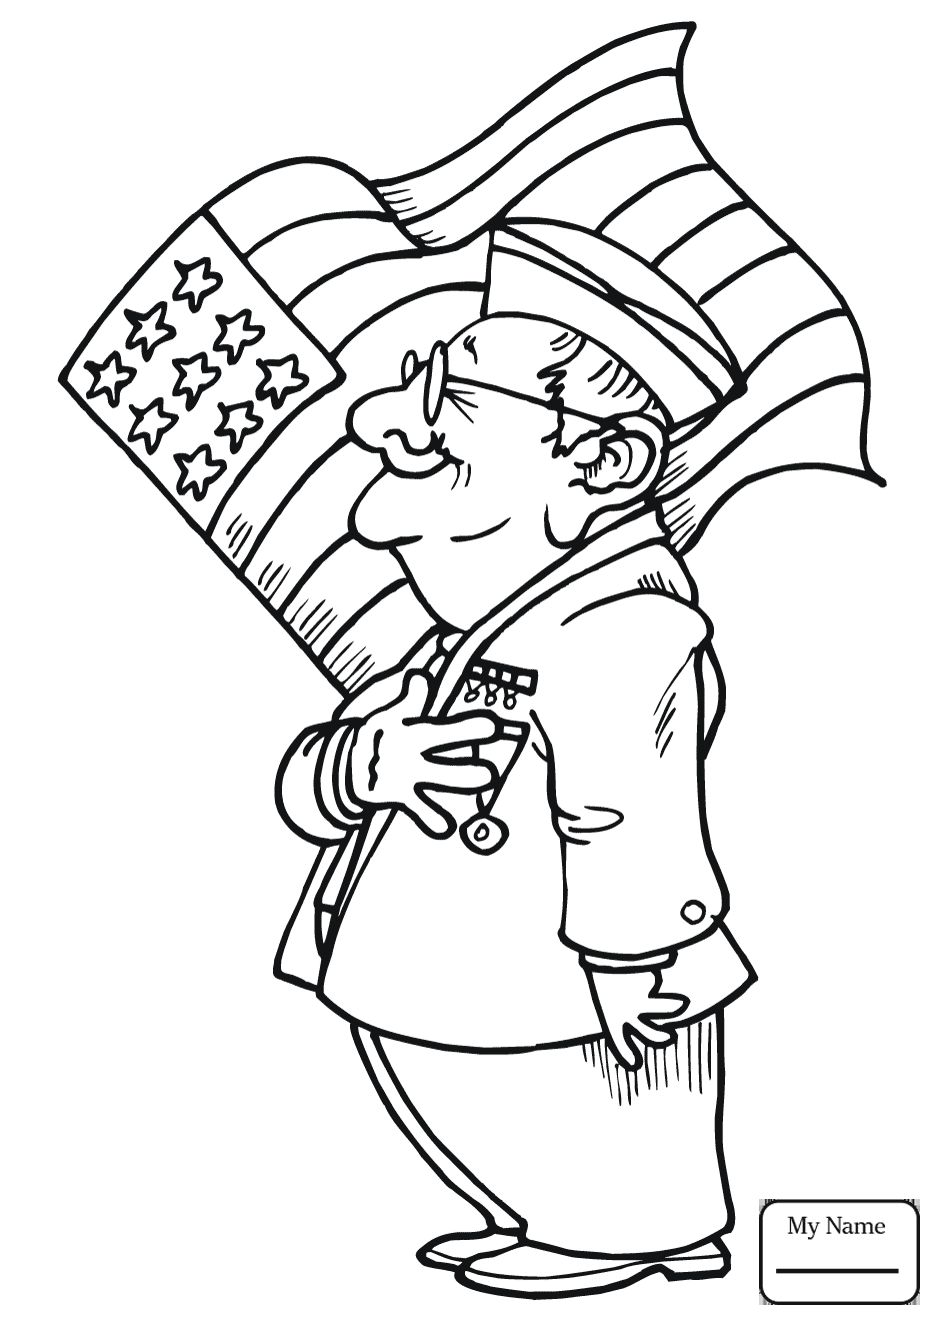 937x1326 Coloring Pages For Kids Veterans Day Holidays Raising The Flag